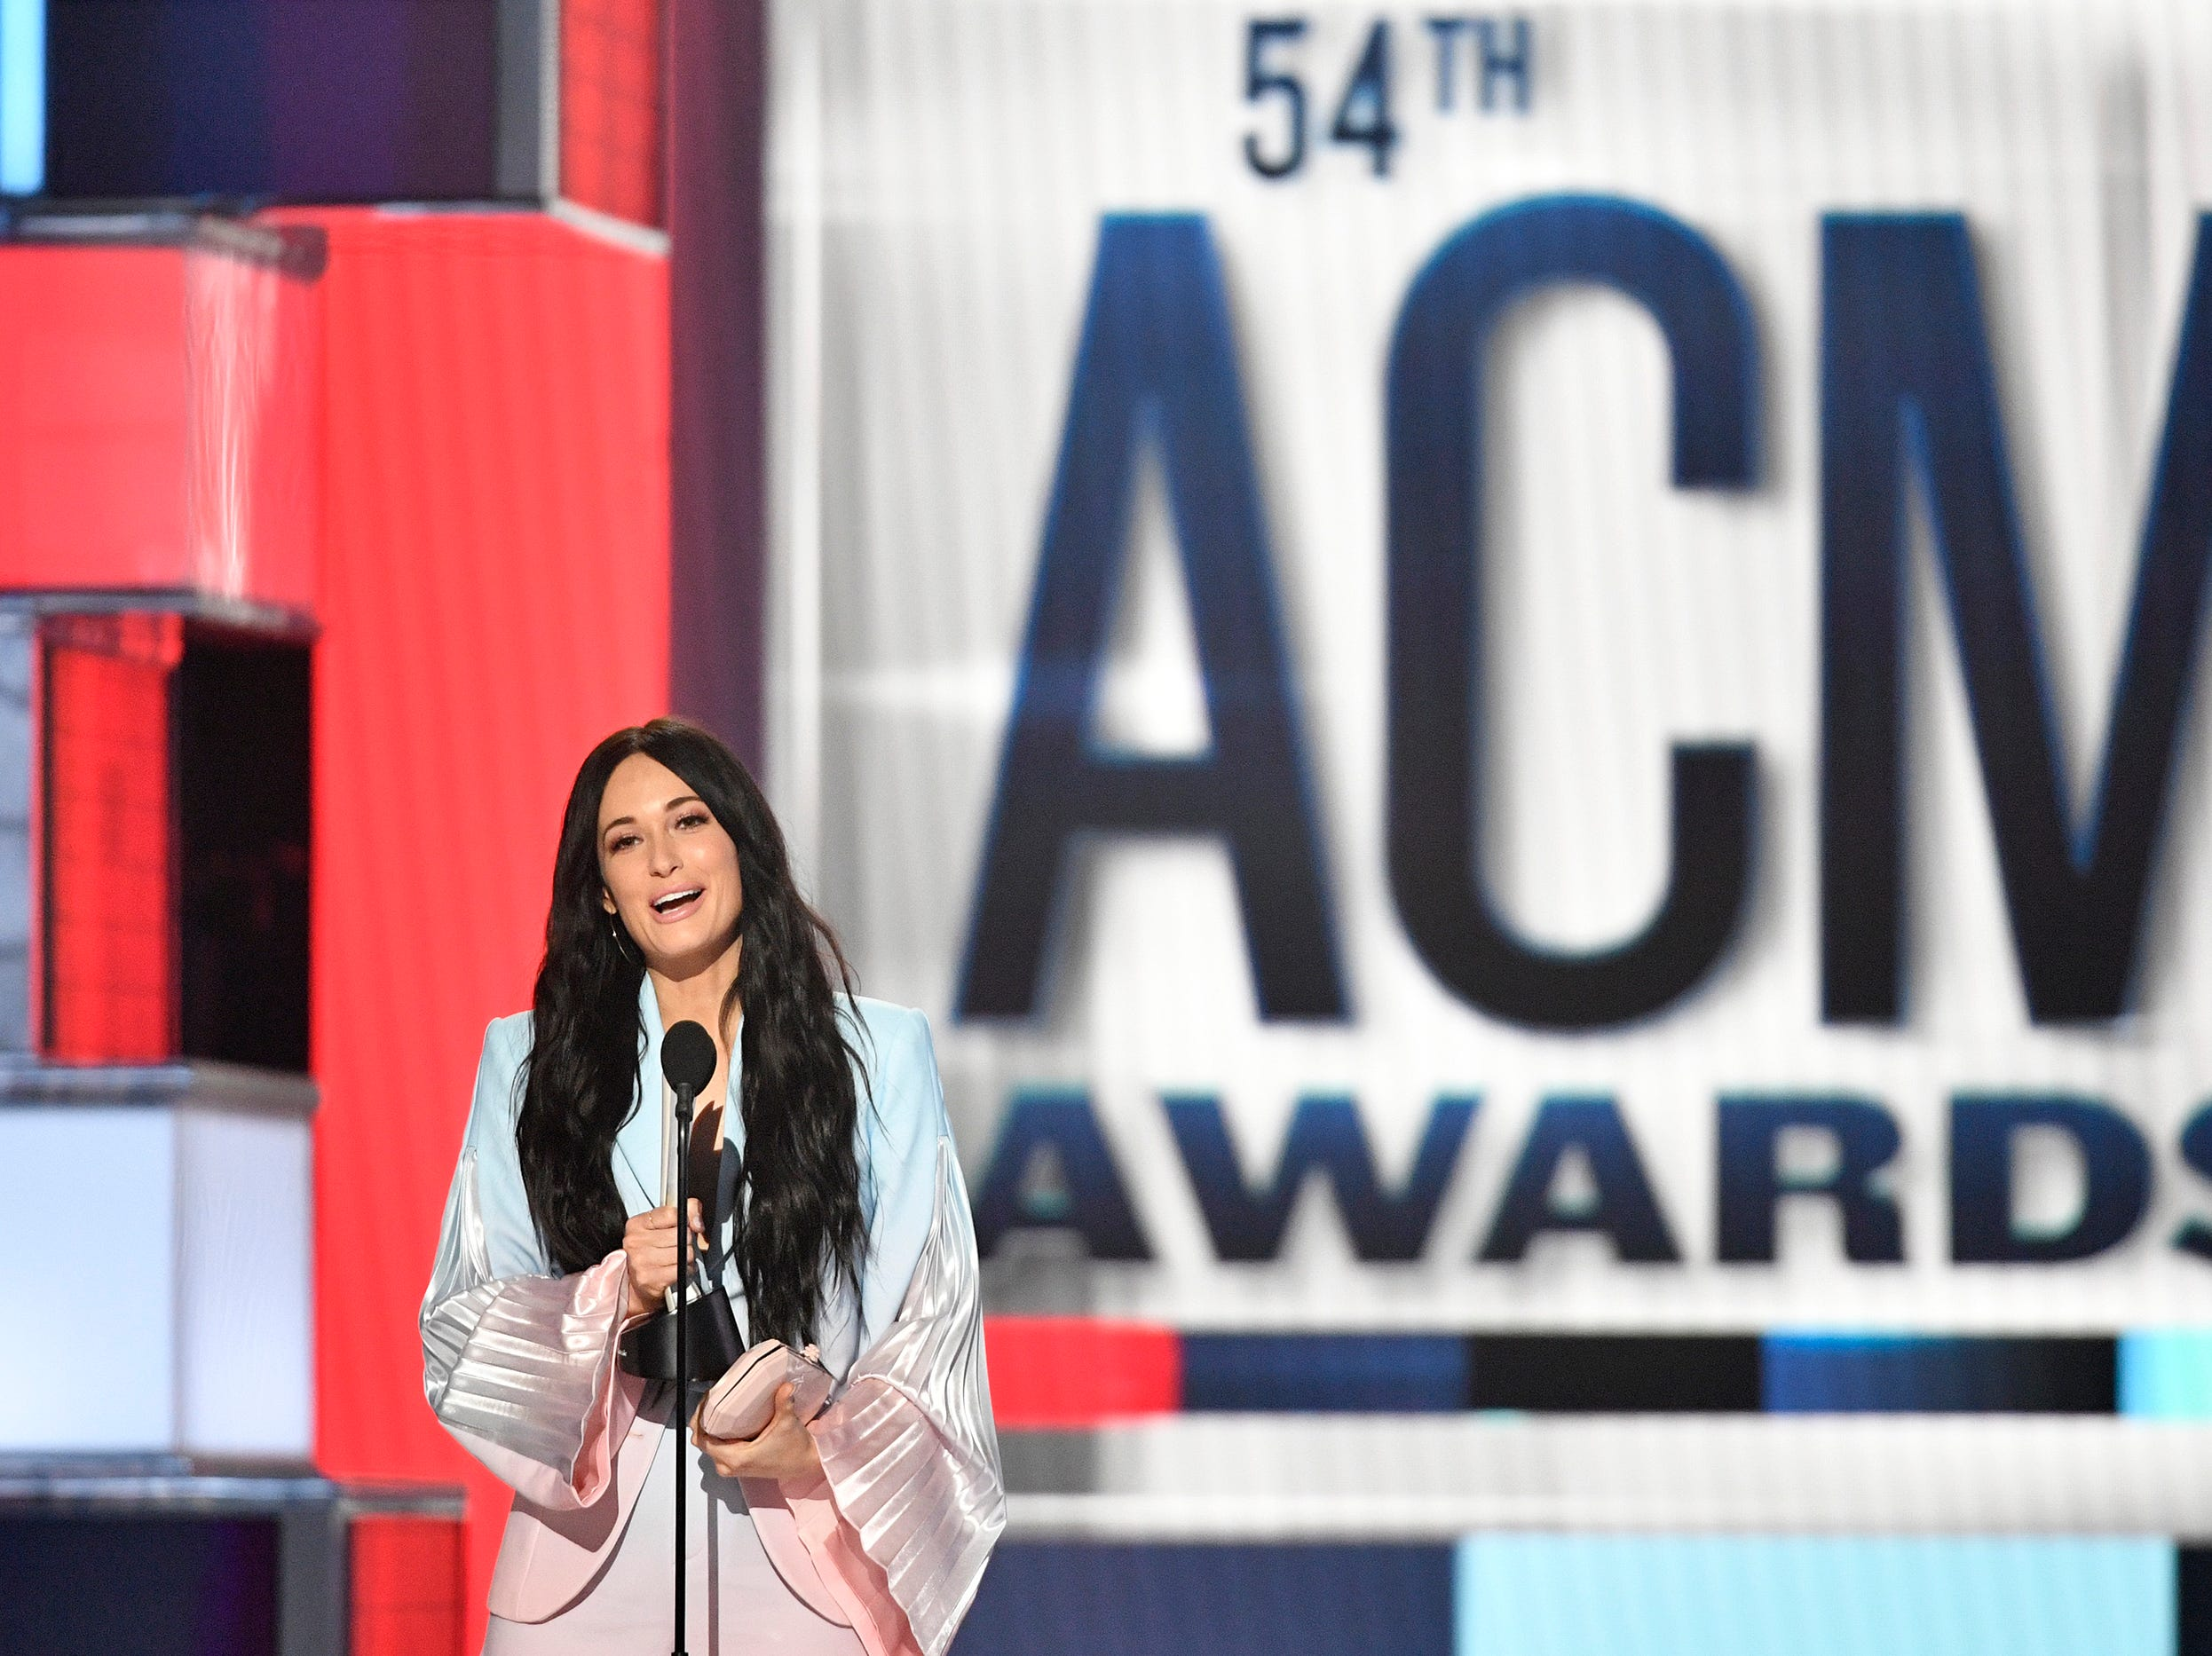 Kacey Musgraves accepts the Female Artist of the Year award during the 54TH Academy of Country Music Awards Sunday, April 7, 2019, in Las Vegas, Nev.